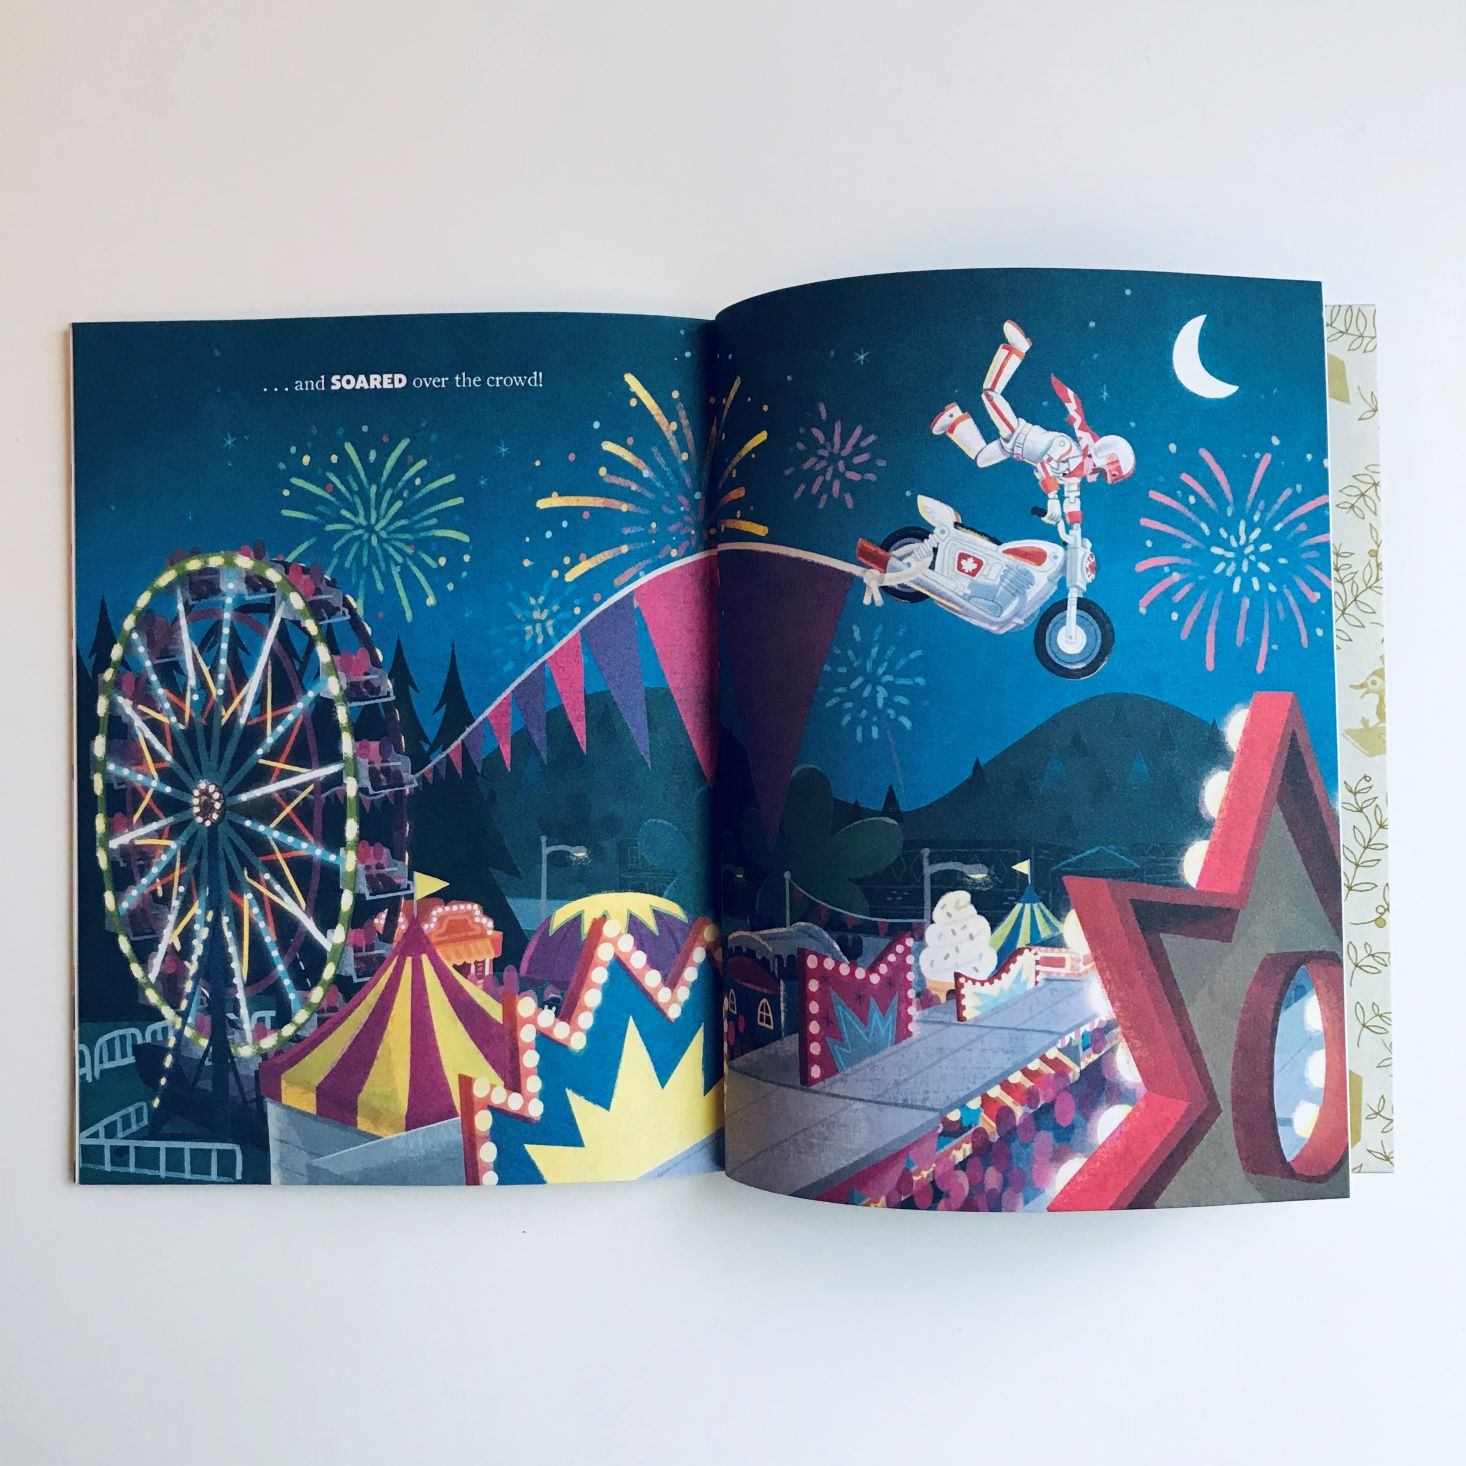 Disney Bedtime Adventure Box October 2019 book ferris wheel page